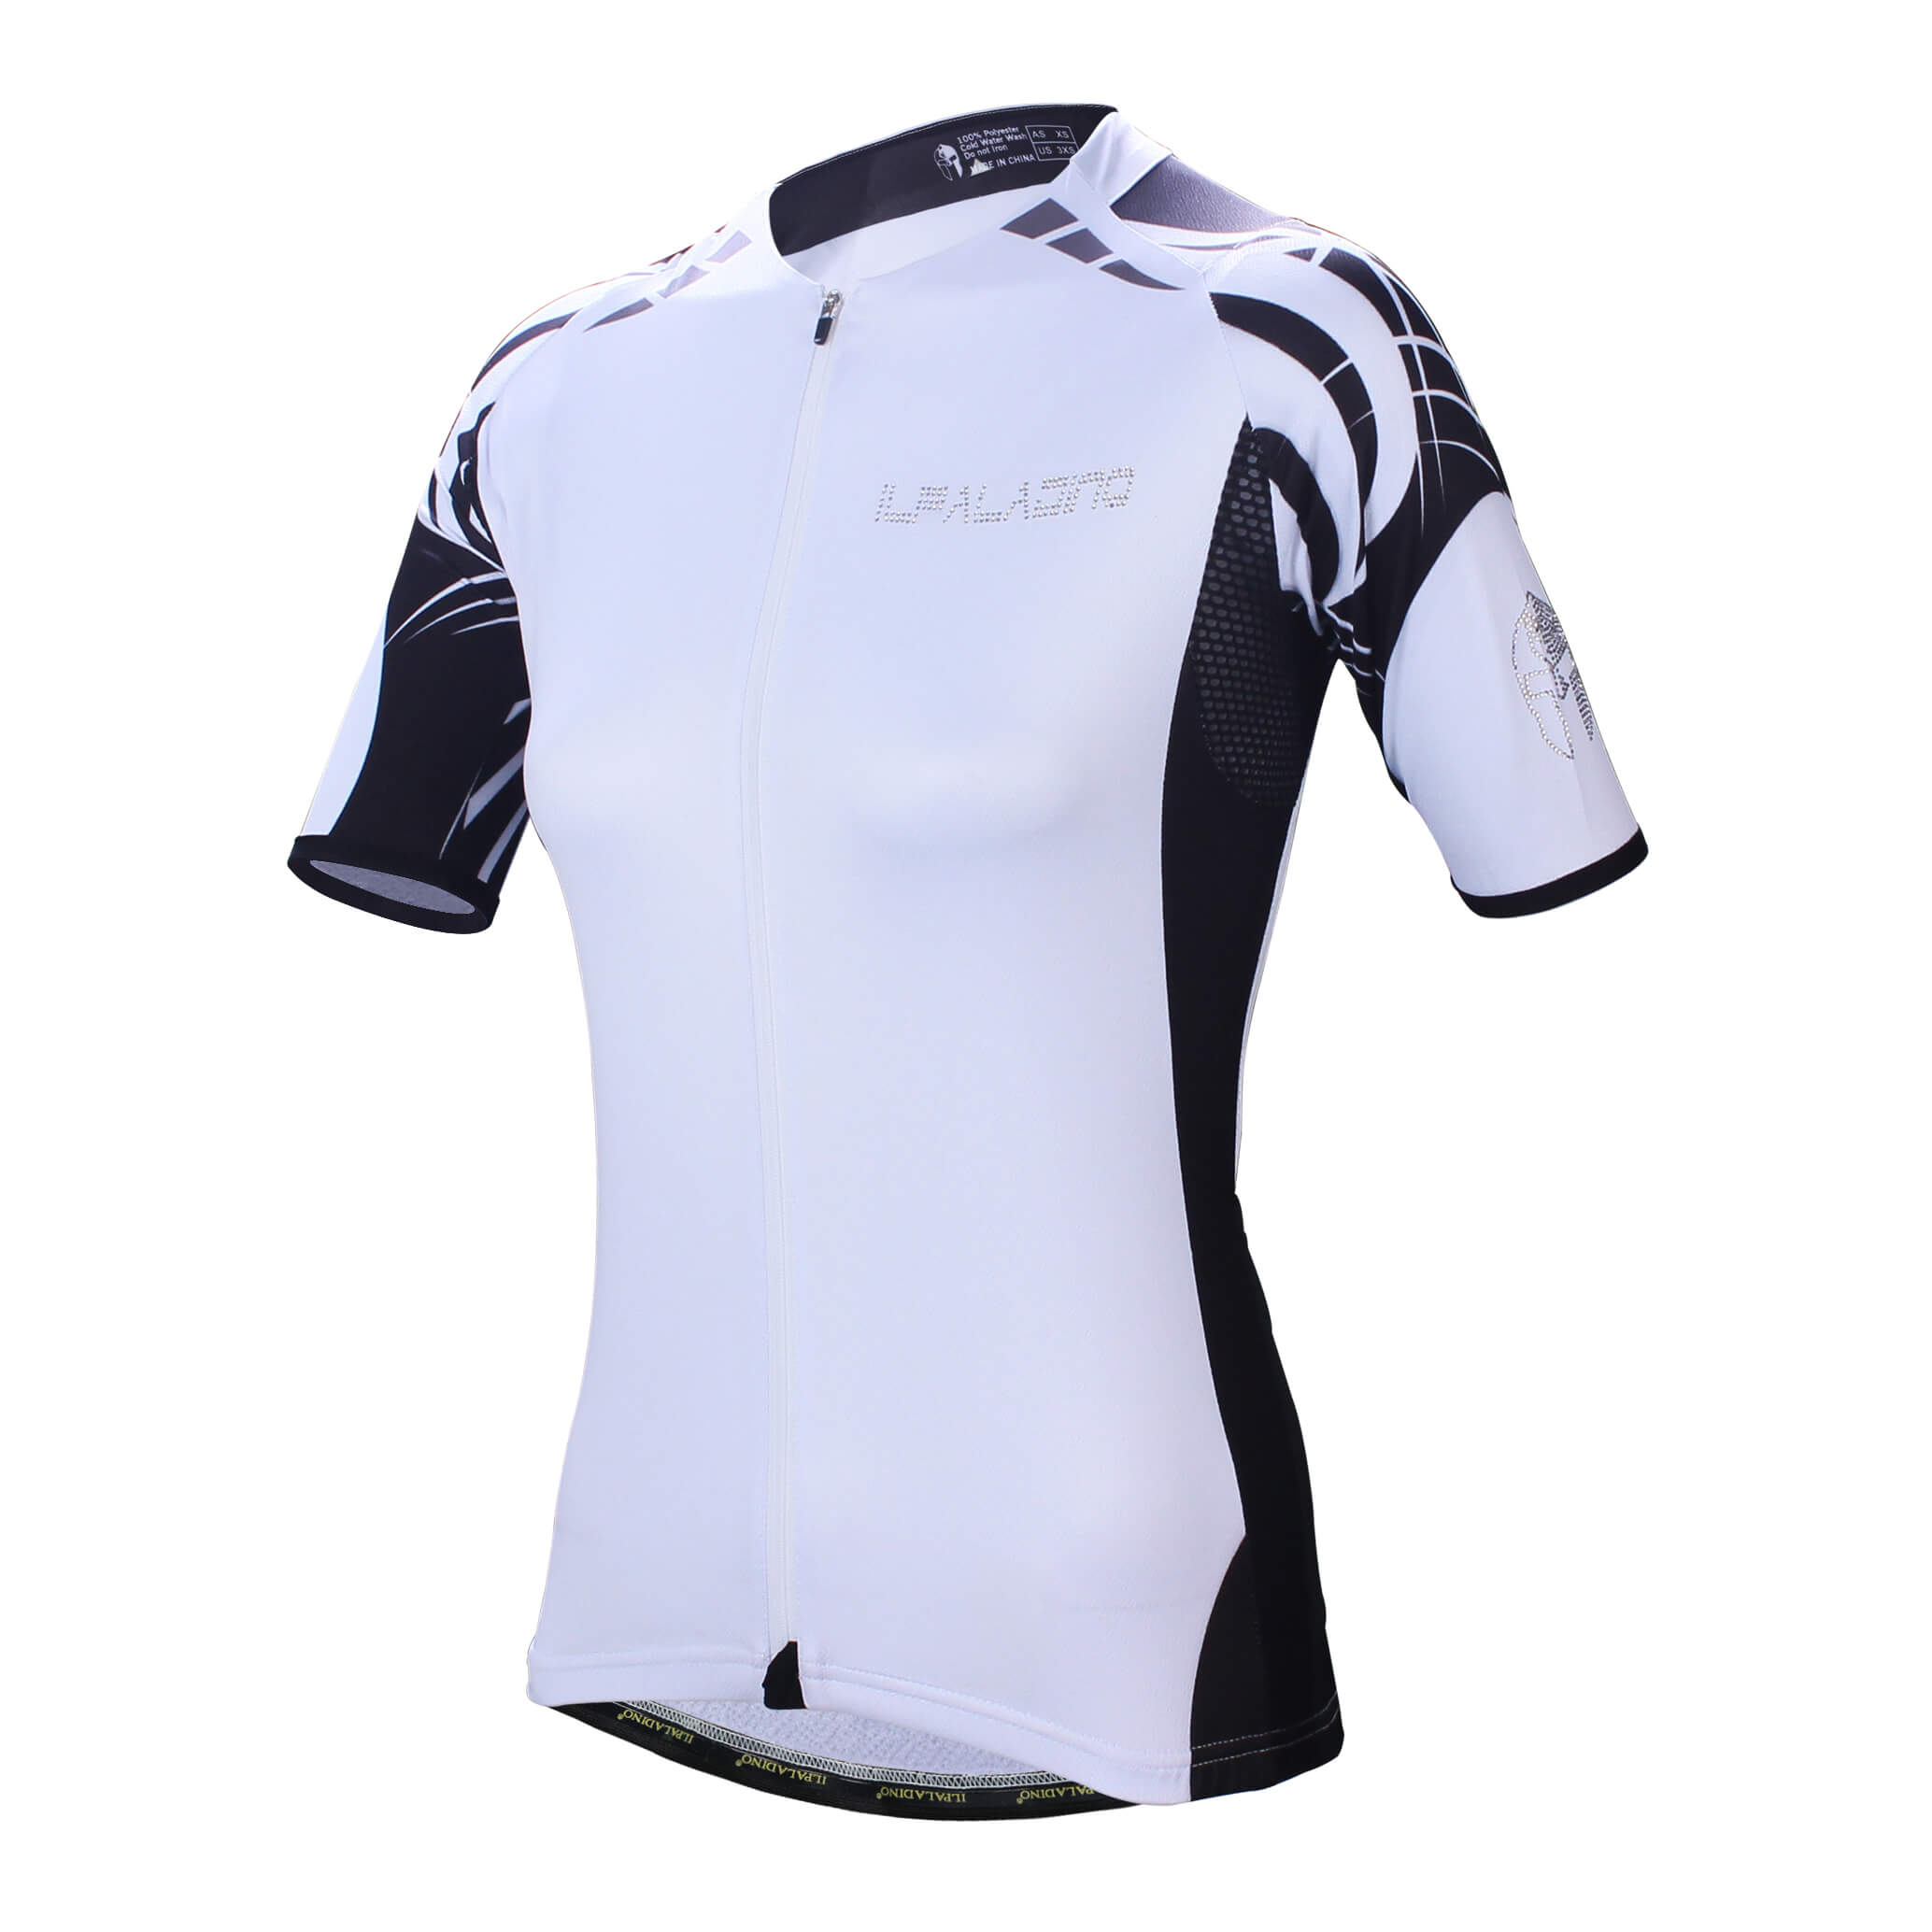 White Womens Cycling Jersey Quality Women'S Bicycle Clothing